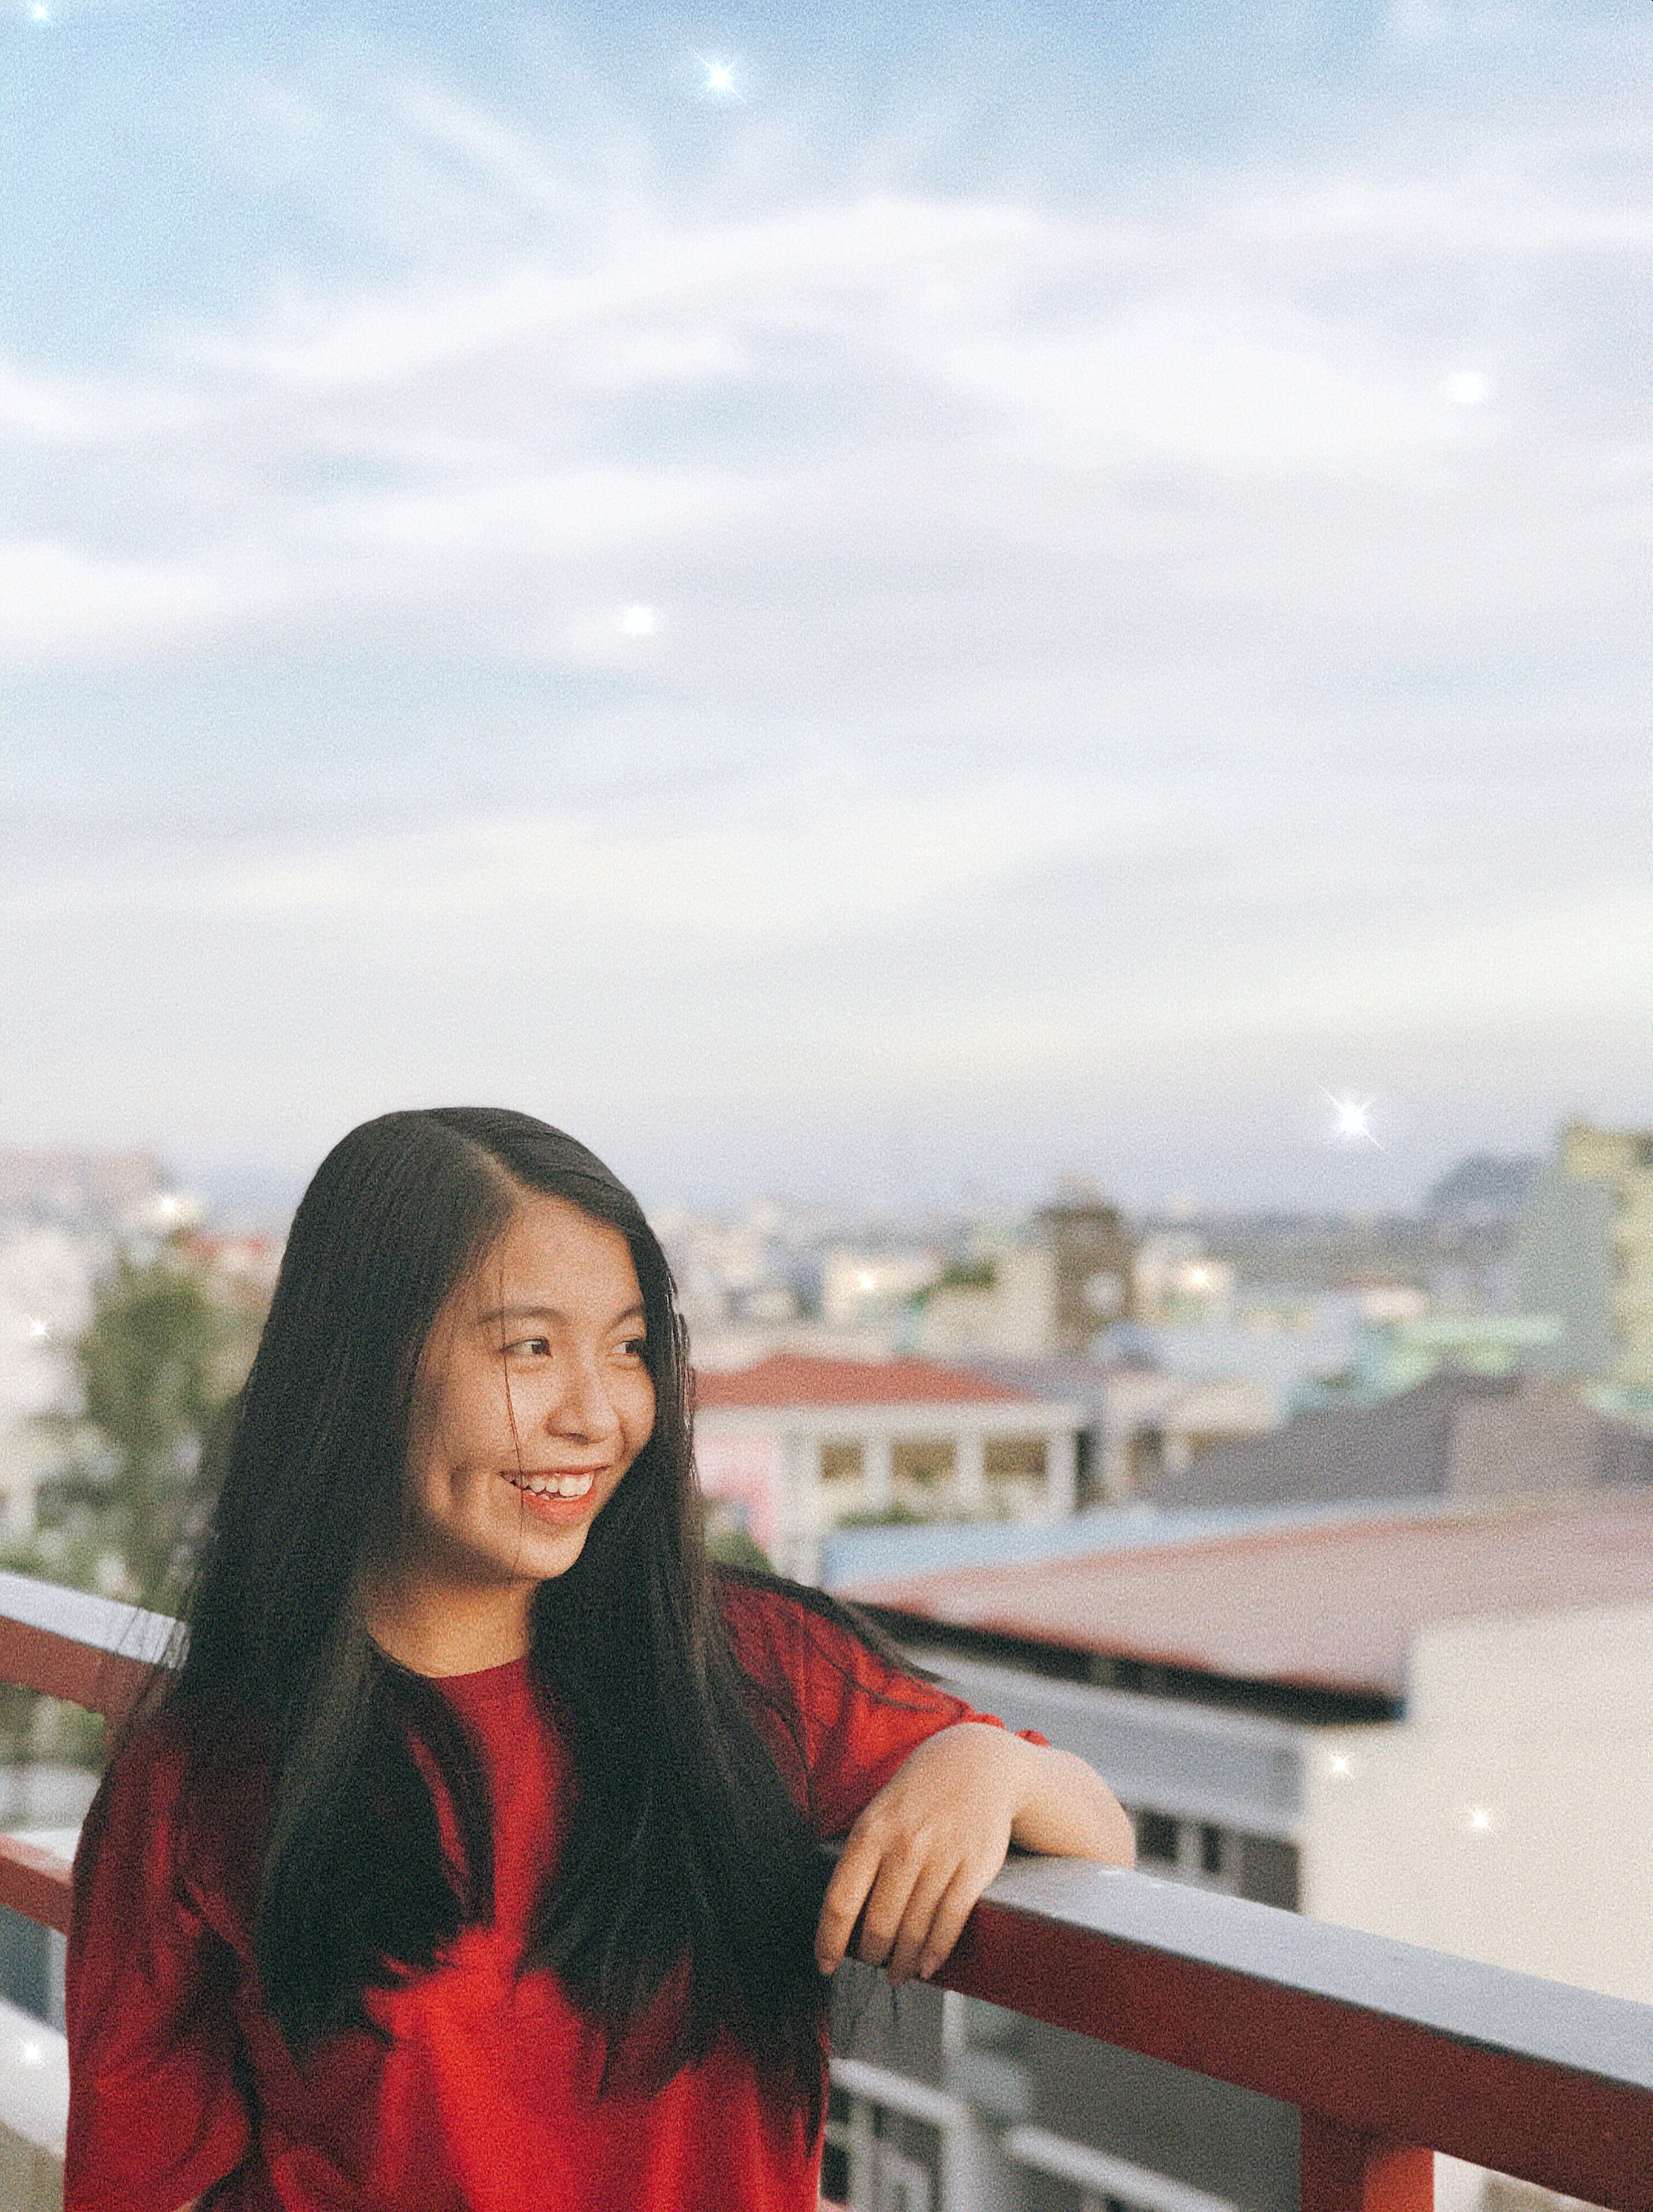 Smiling Woman Leaning on Balcony Fence